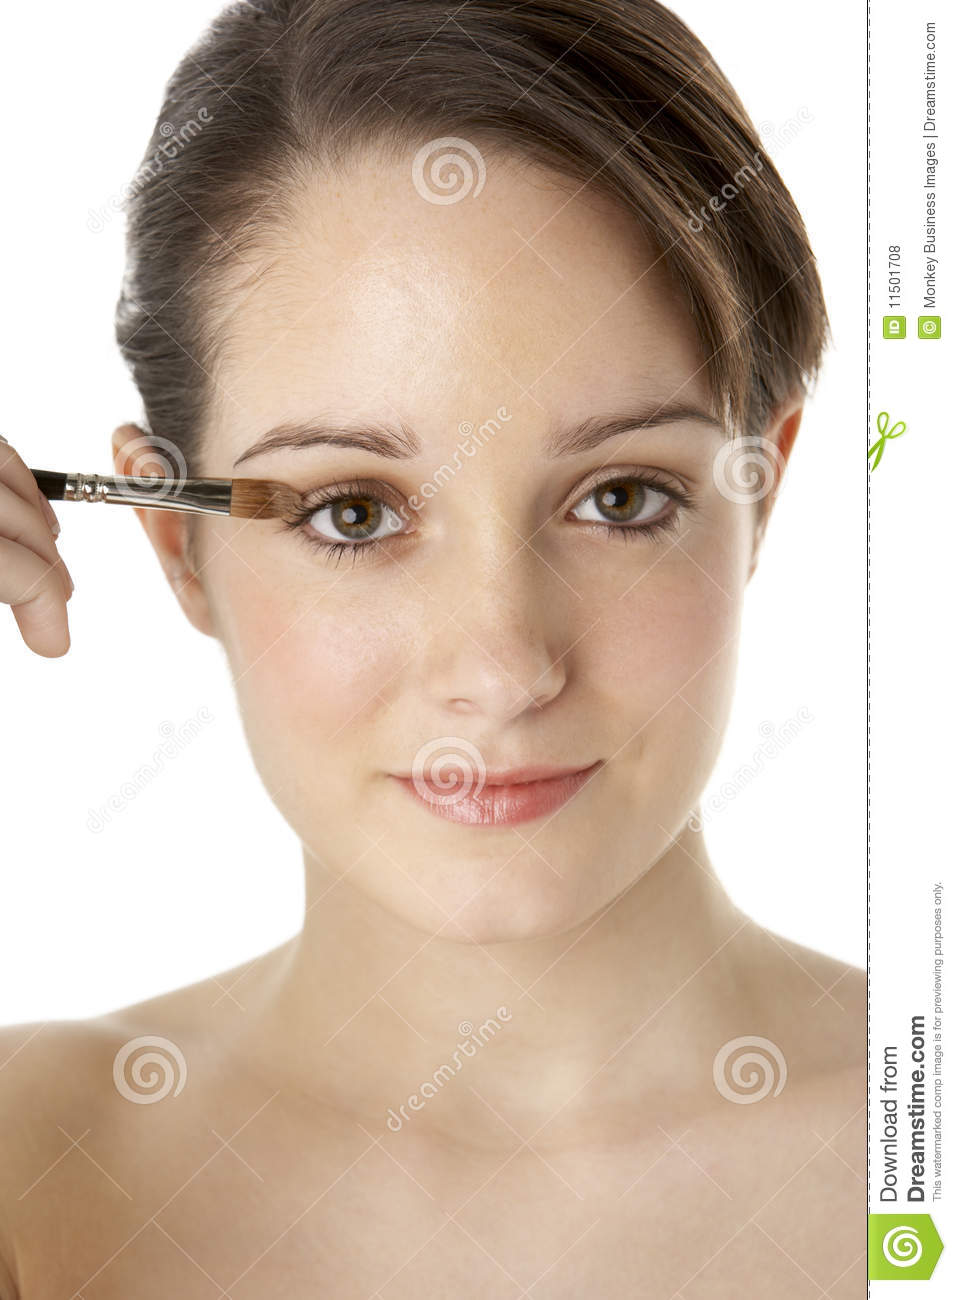 how to apply make up on a teen